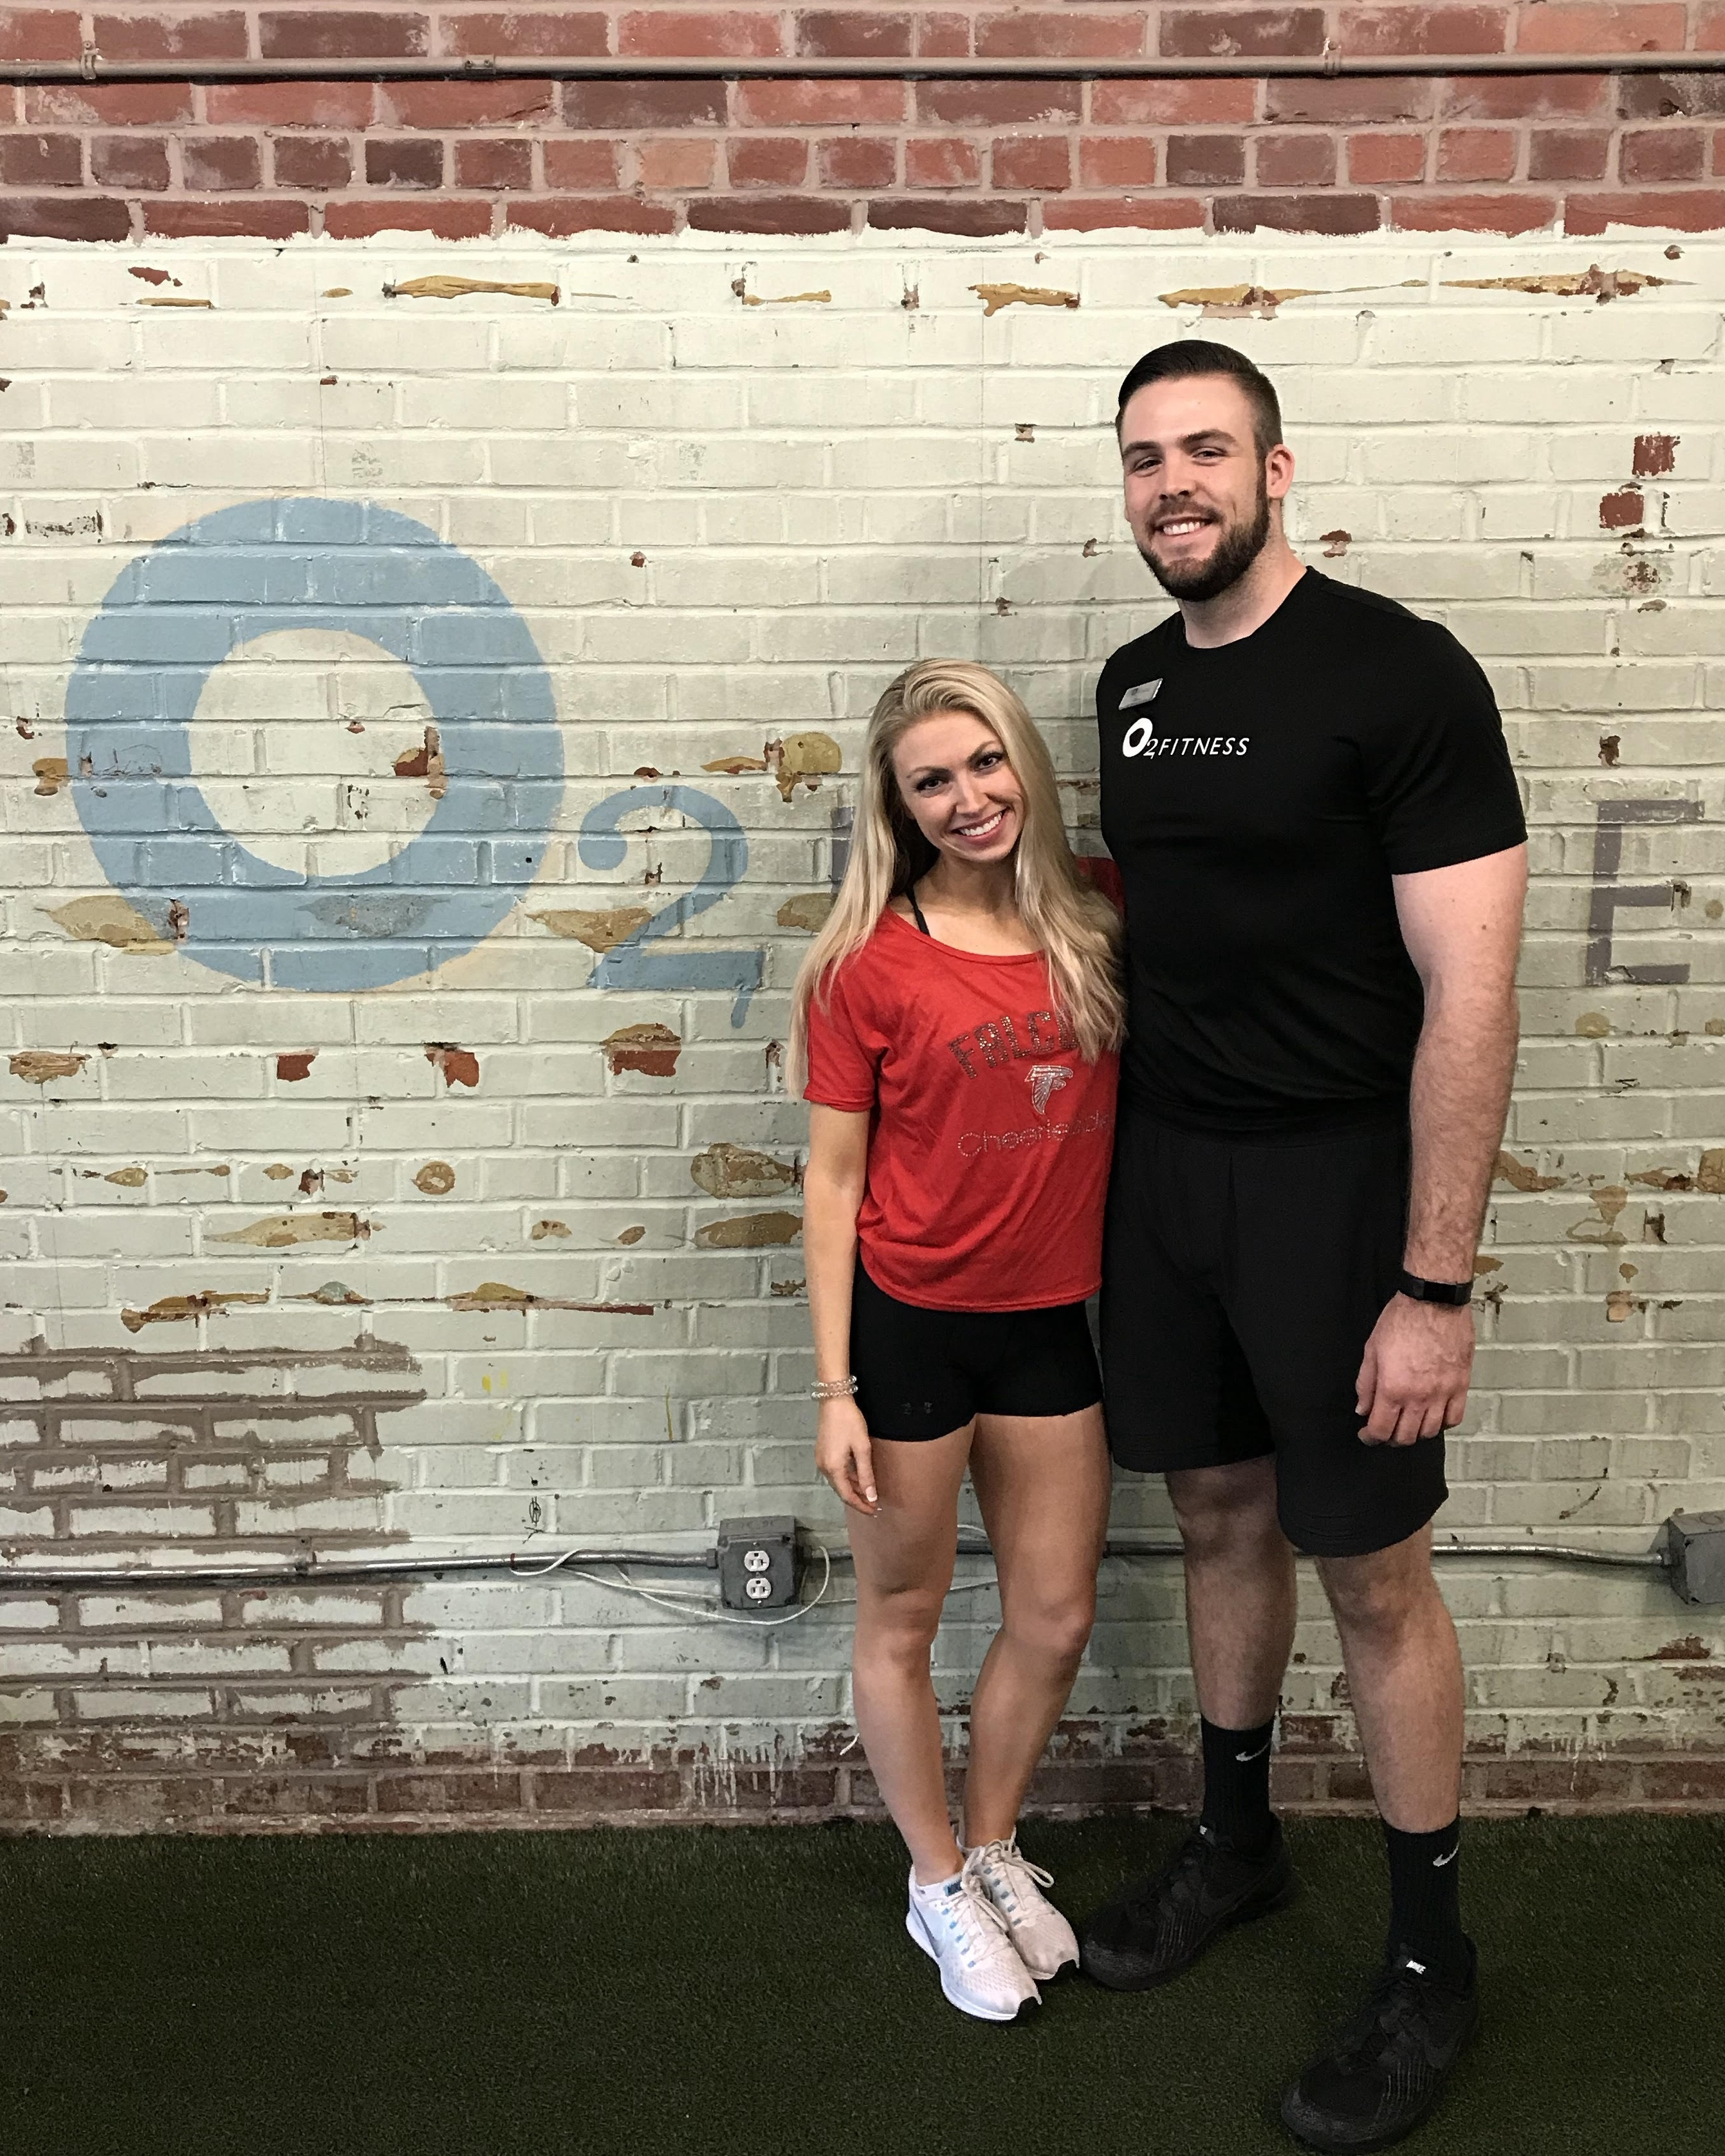 O2 Fitness Seaboard Station Personal Training Grant Cain Taylor Filliben-455966-edited